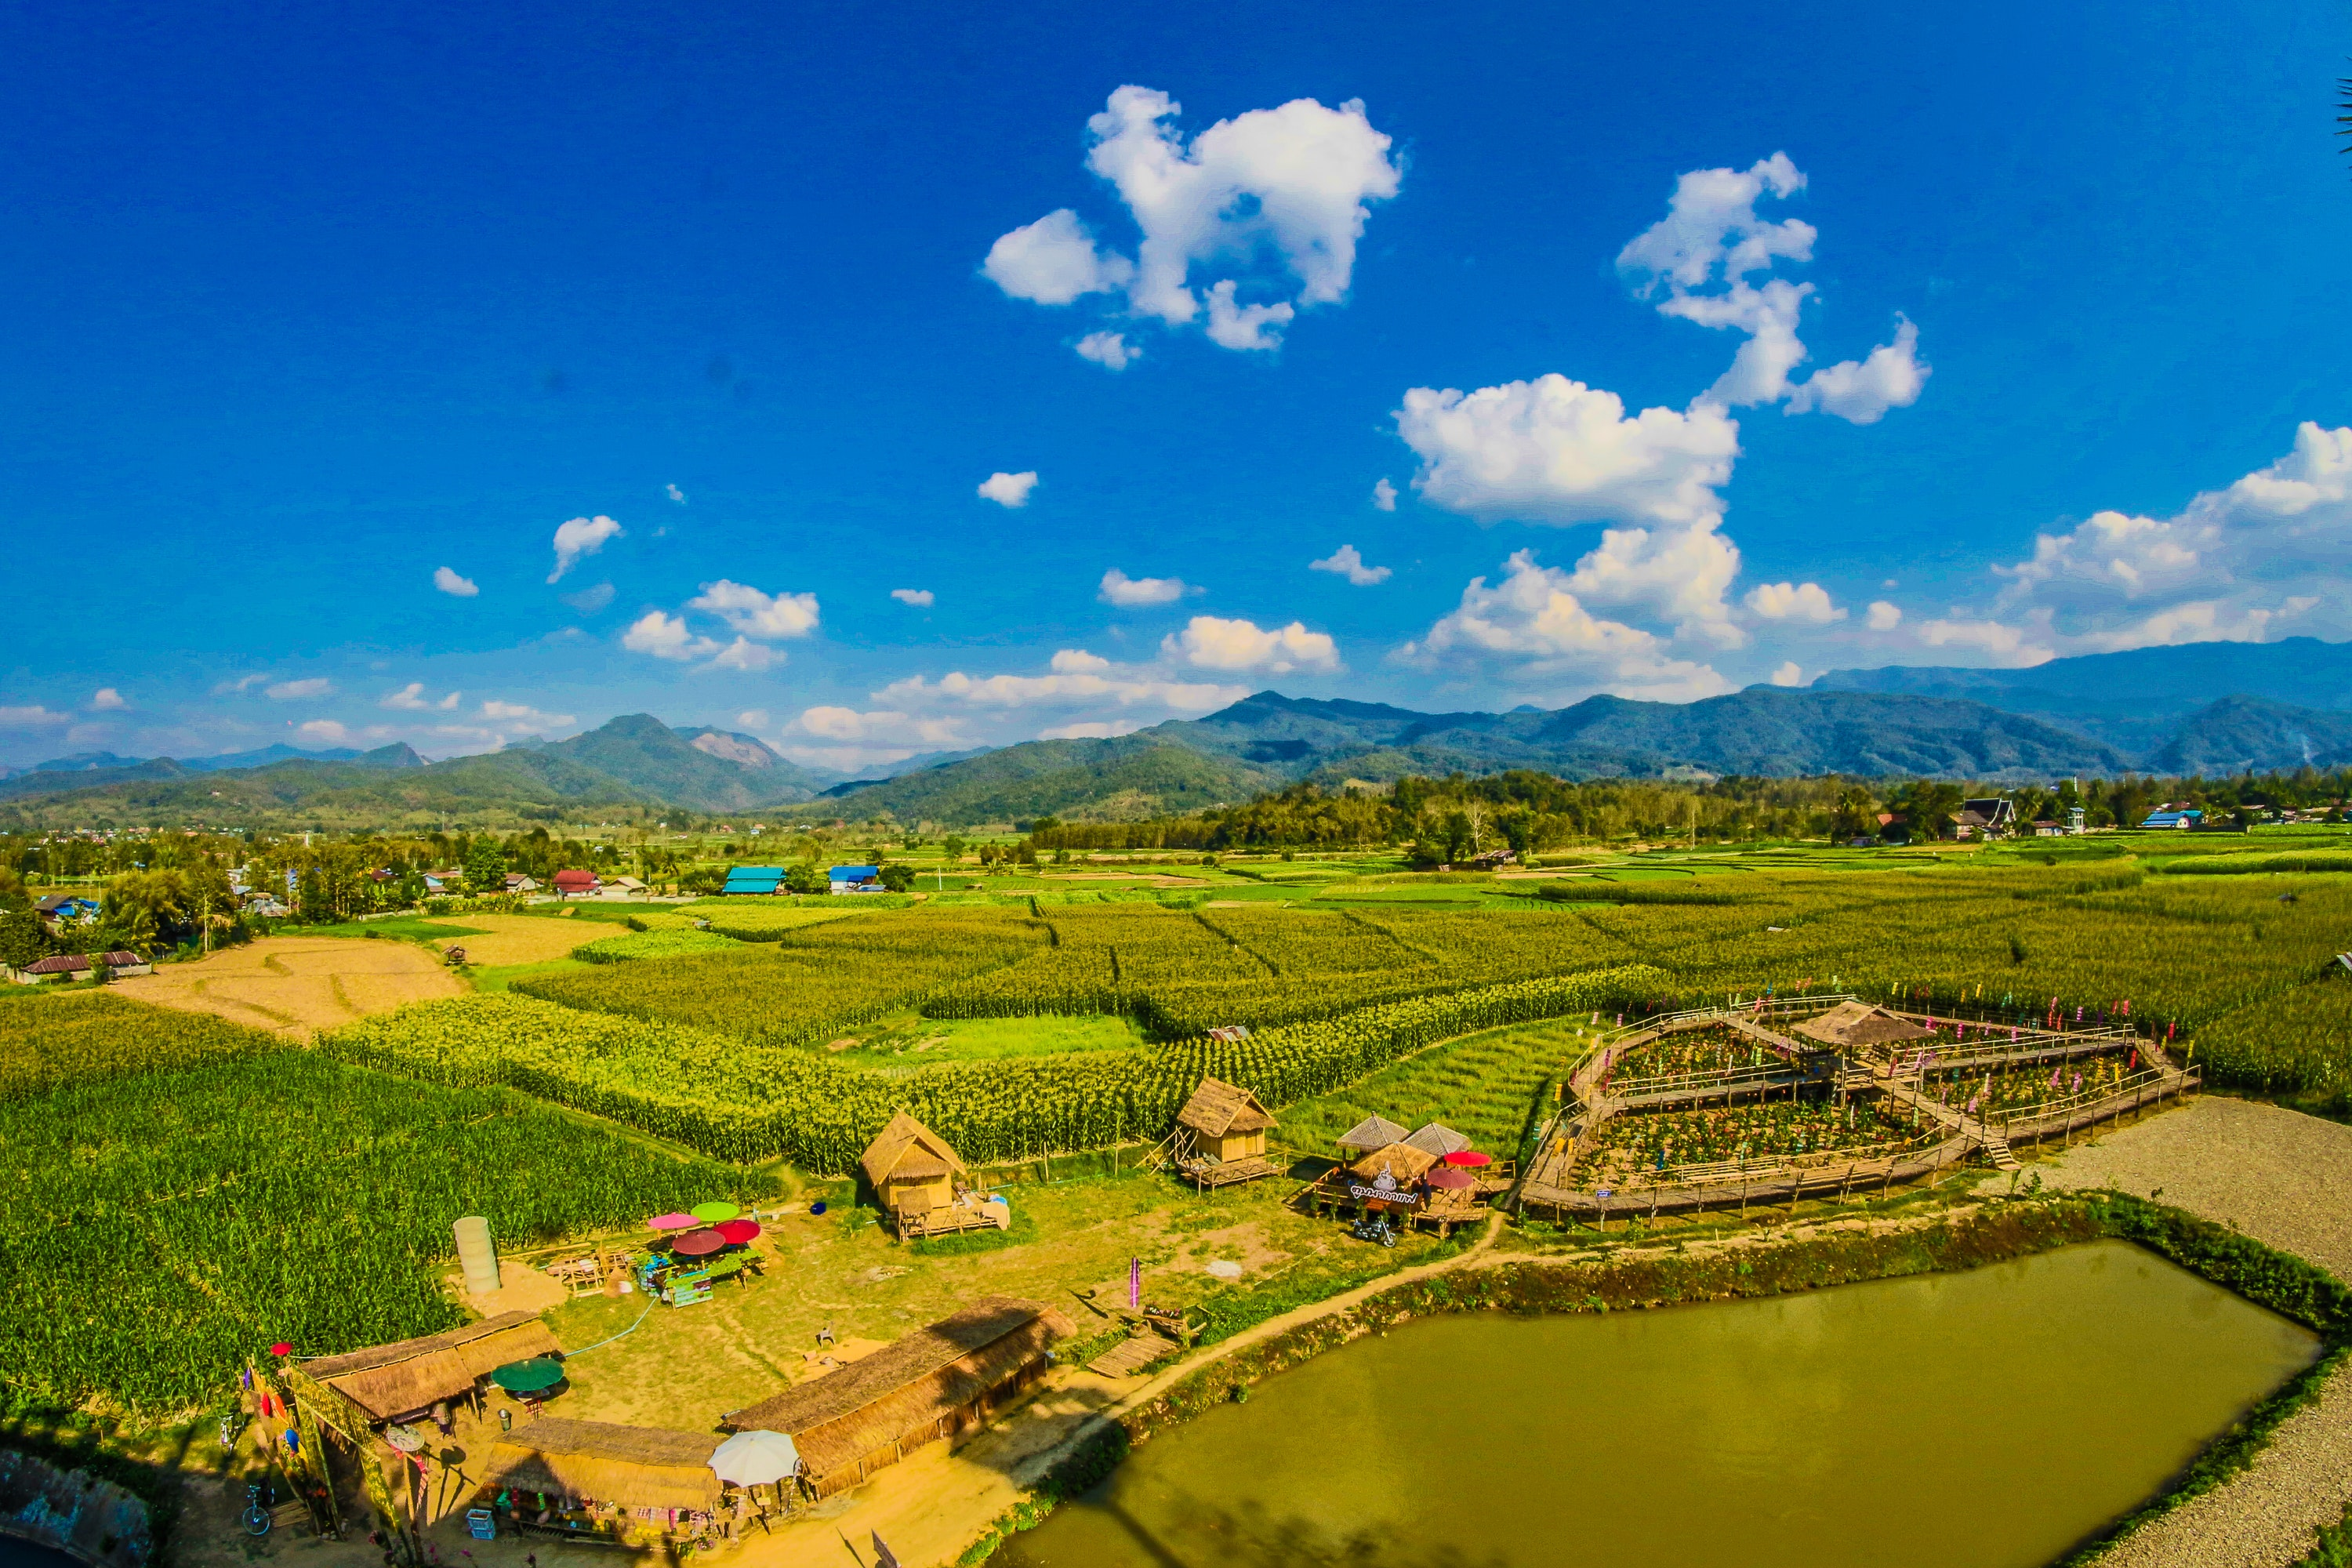 Rice Field With Mountain and Houses during Cloudy Day, Agricultural, Rural, Nature, Organic, HQ Photo